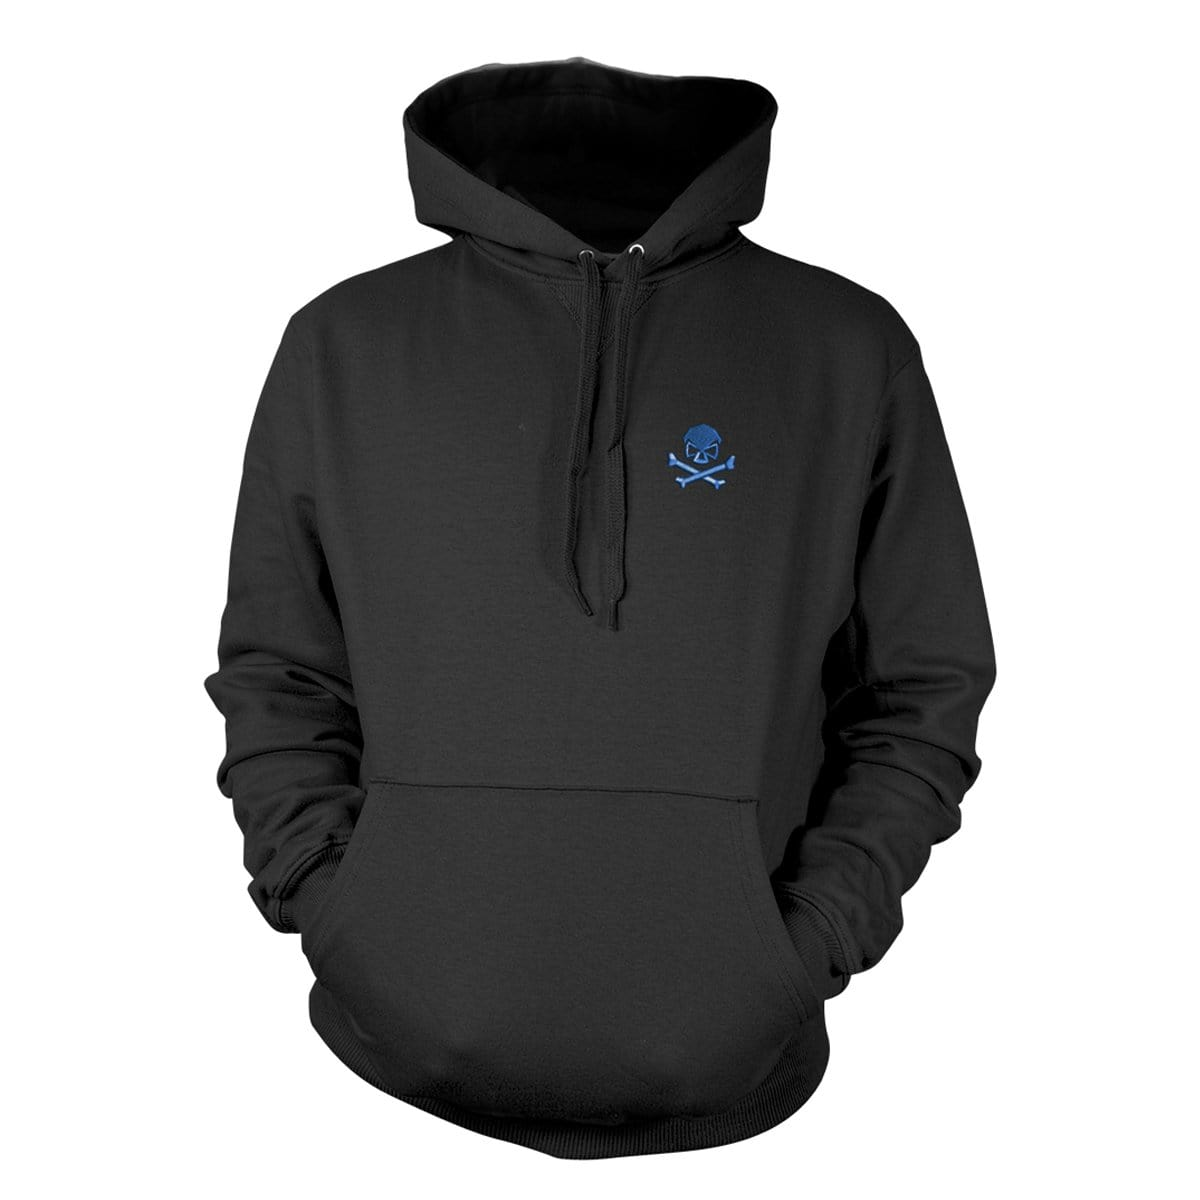 Skull & Bones Hoodie (Embroidered) - Black/Blue - Hoodies - Pipe Hitters Union